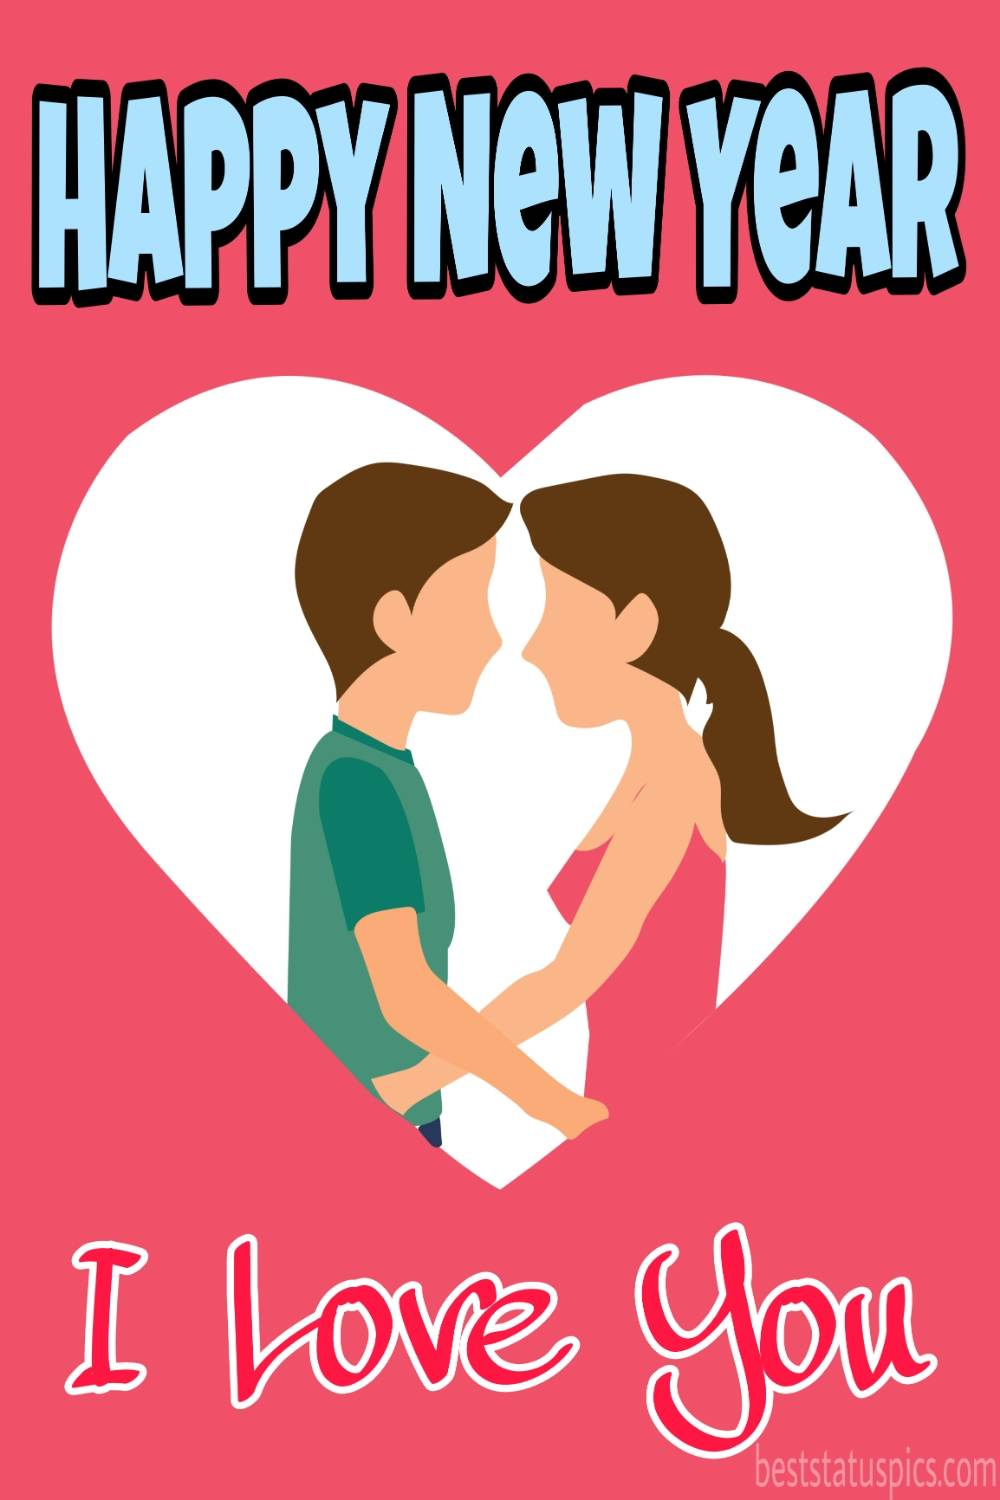 Romantic Happy new year 2022 love you wishes card with love couples for Whatsapp DP